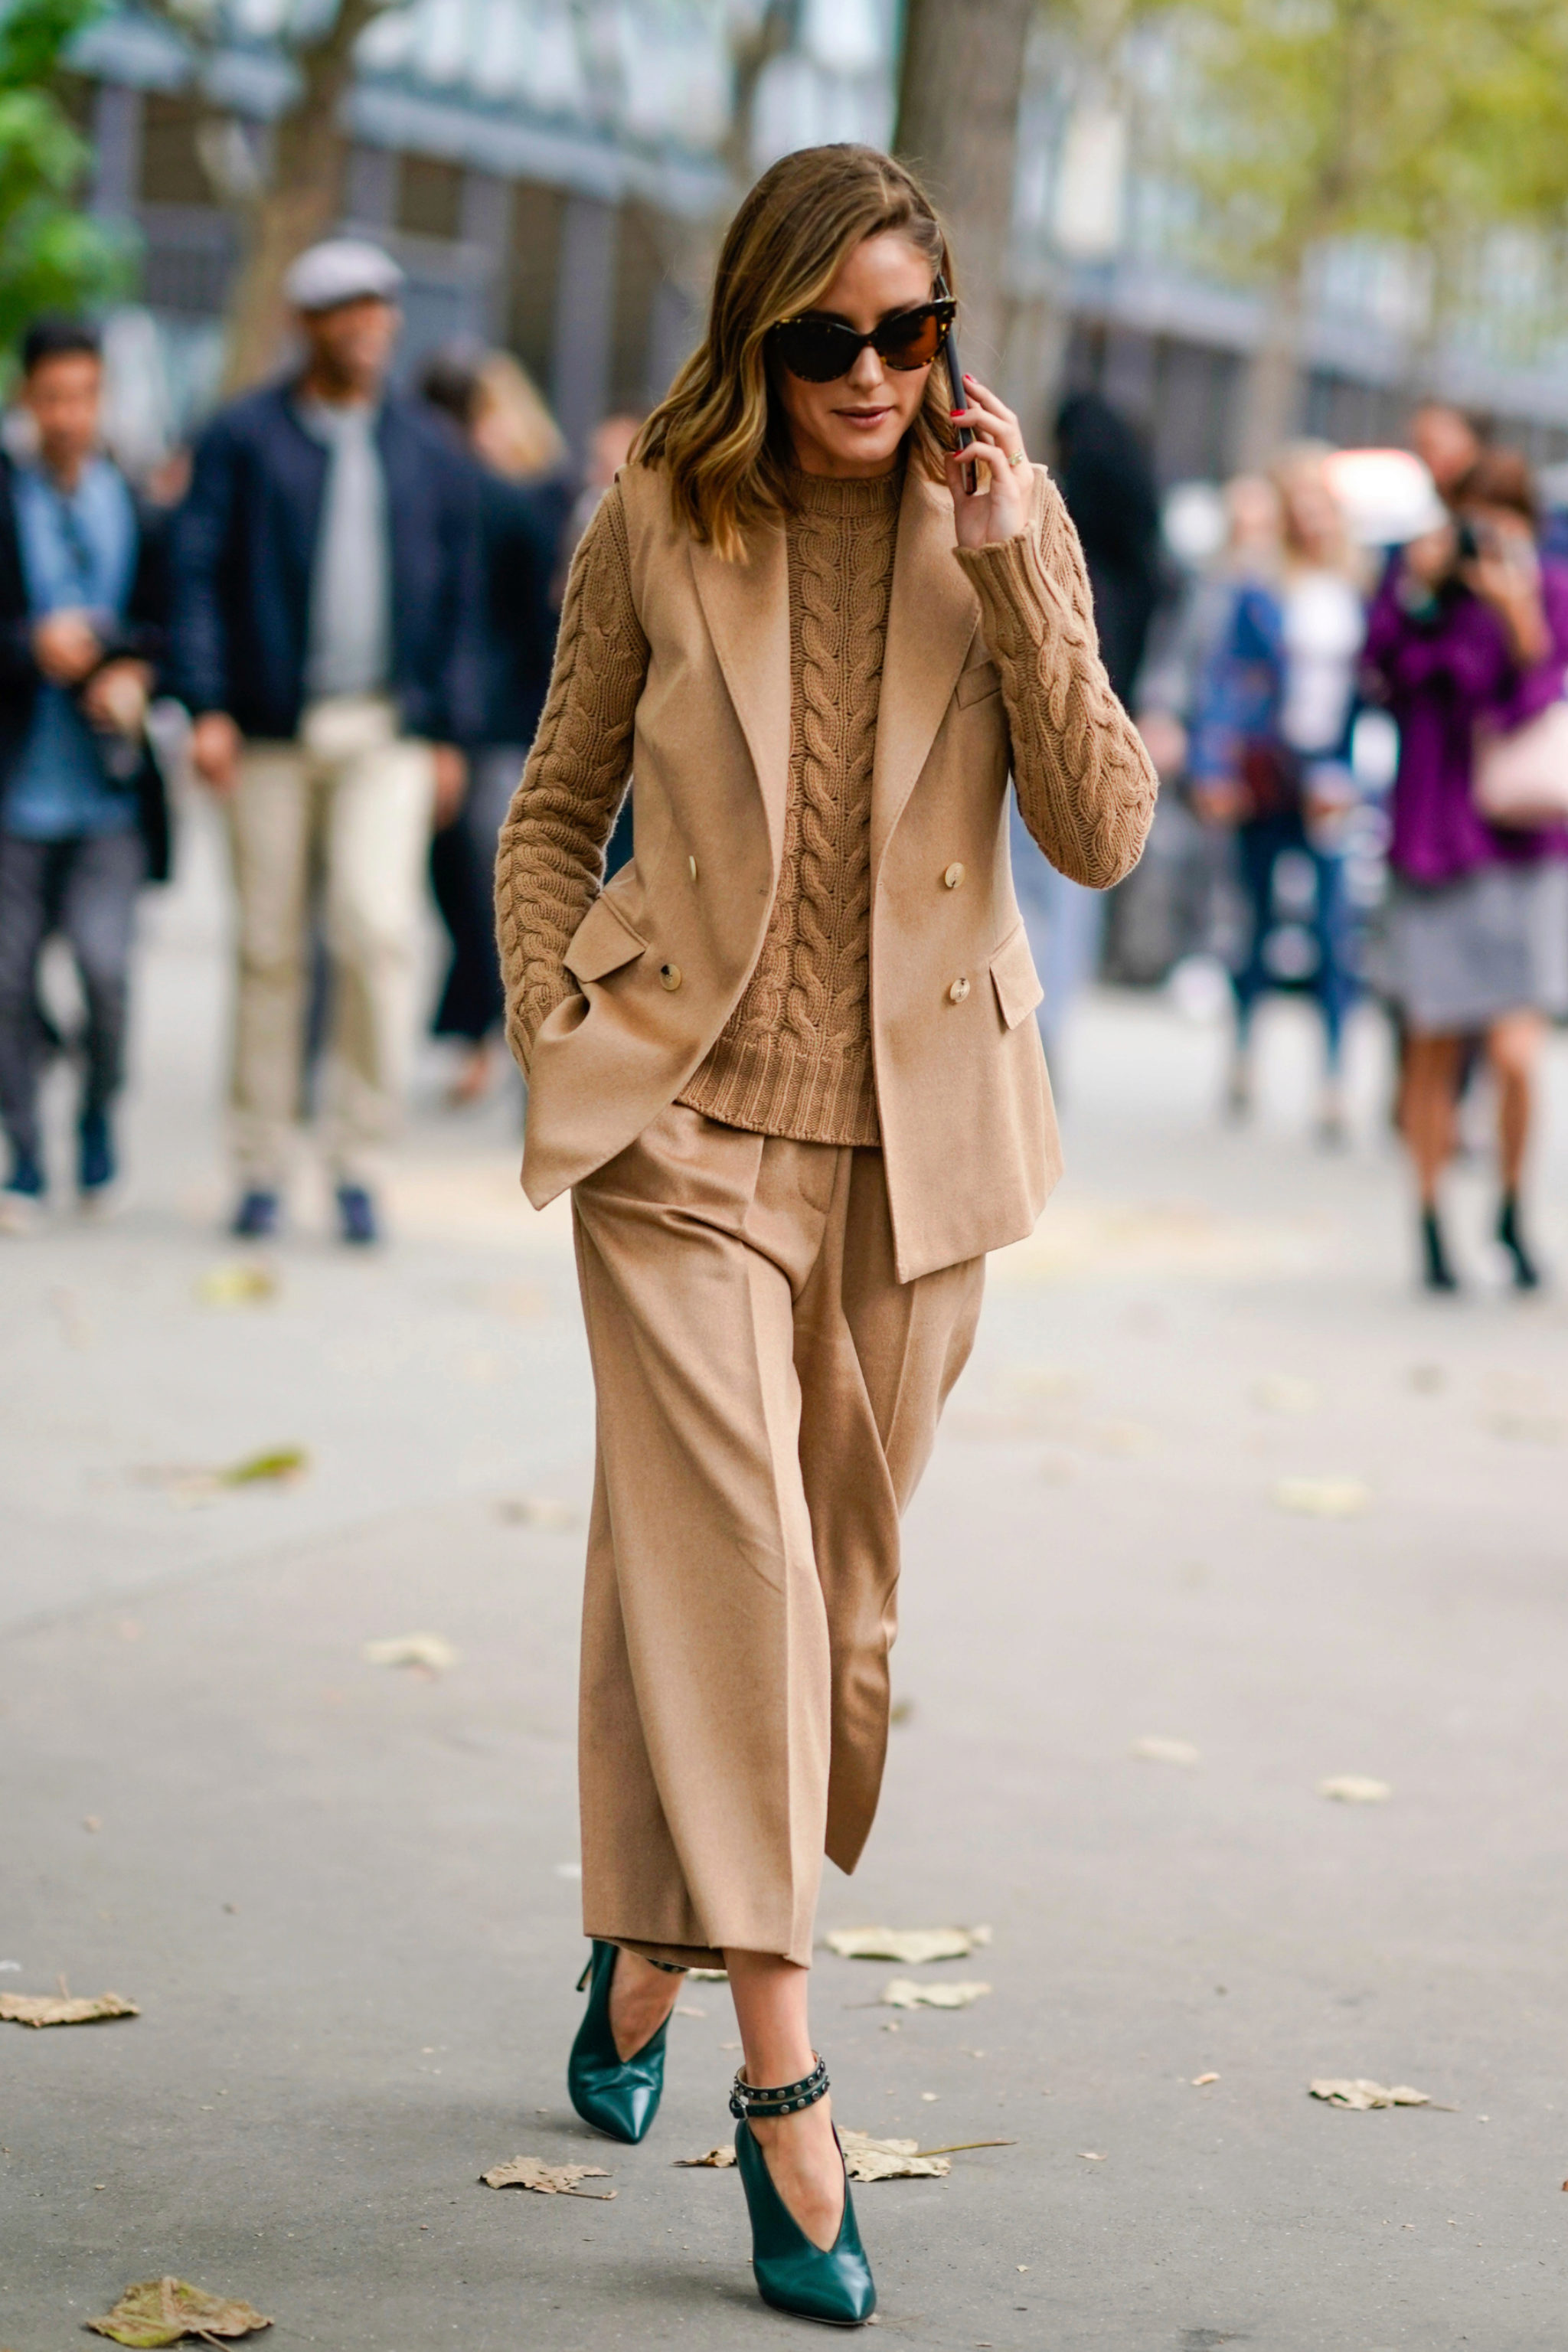 Olivia Palermo en la Fashion week de París 2018.